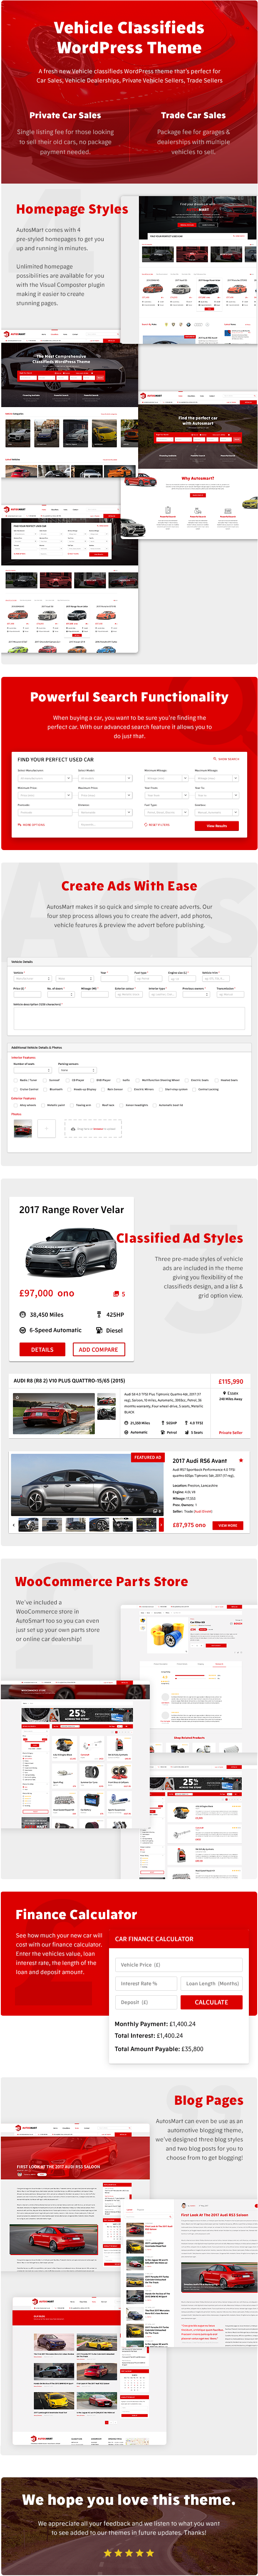 AutosMart - Automotive Car Dealer, Classifieds WordPress Theme